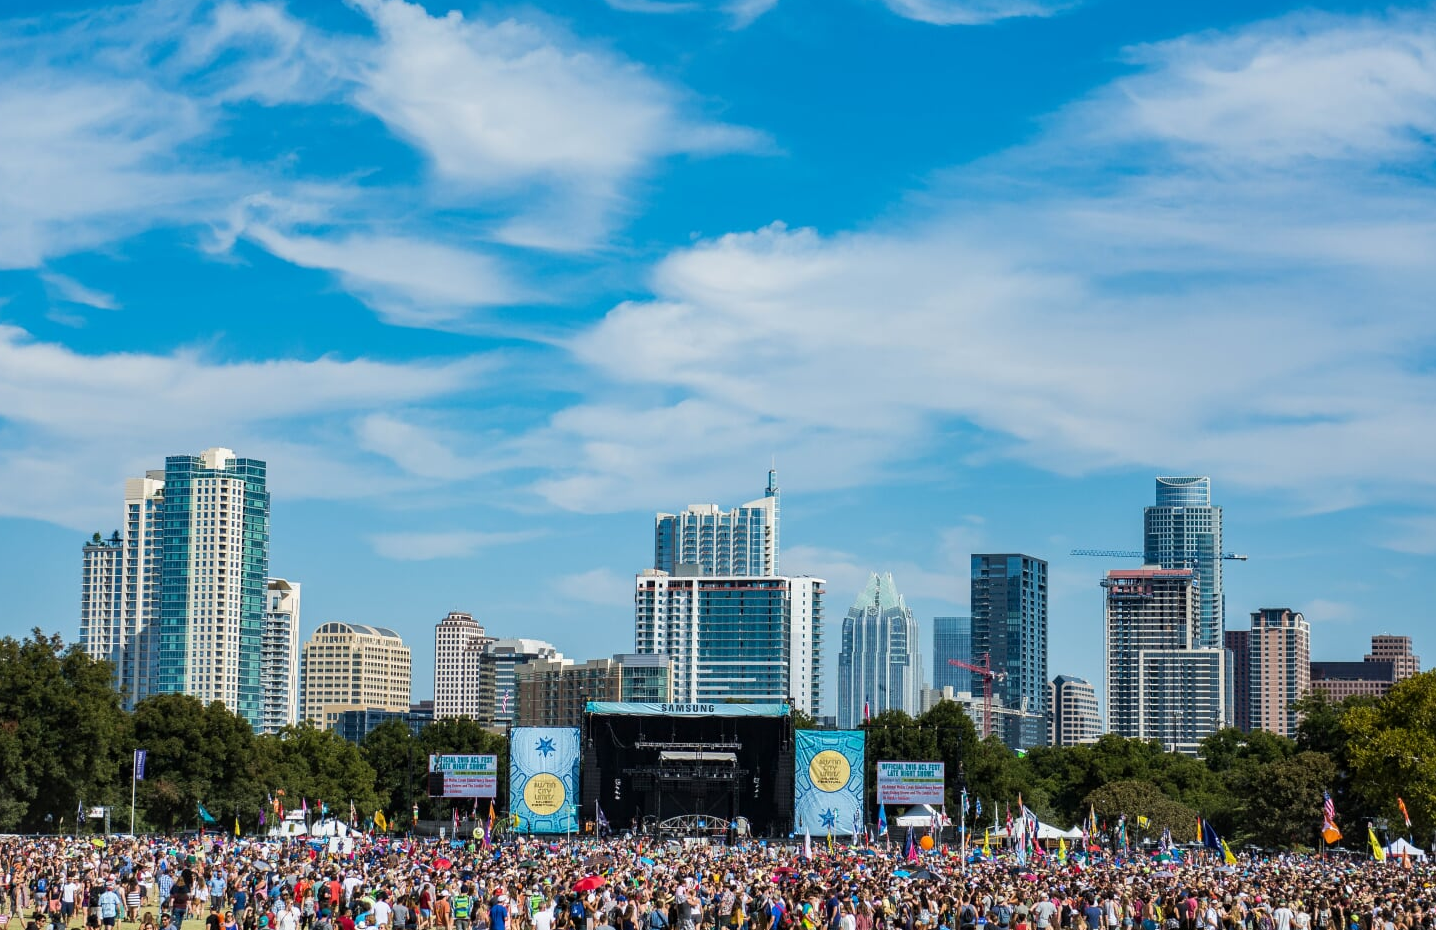 Samsung Stage ACL Fest 2015